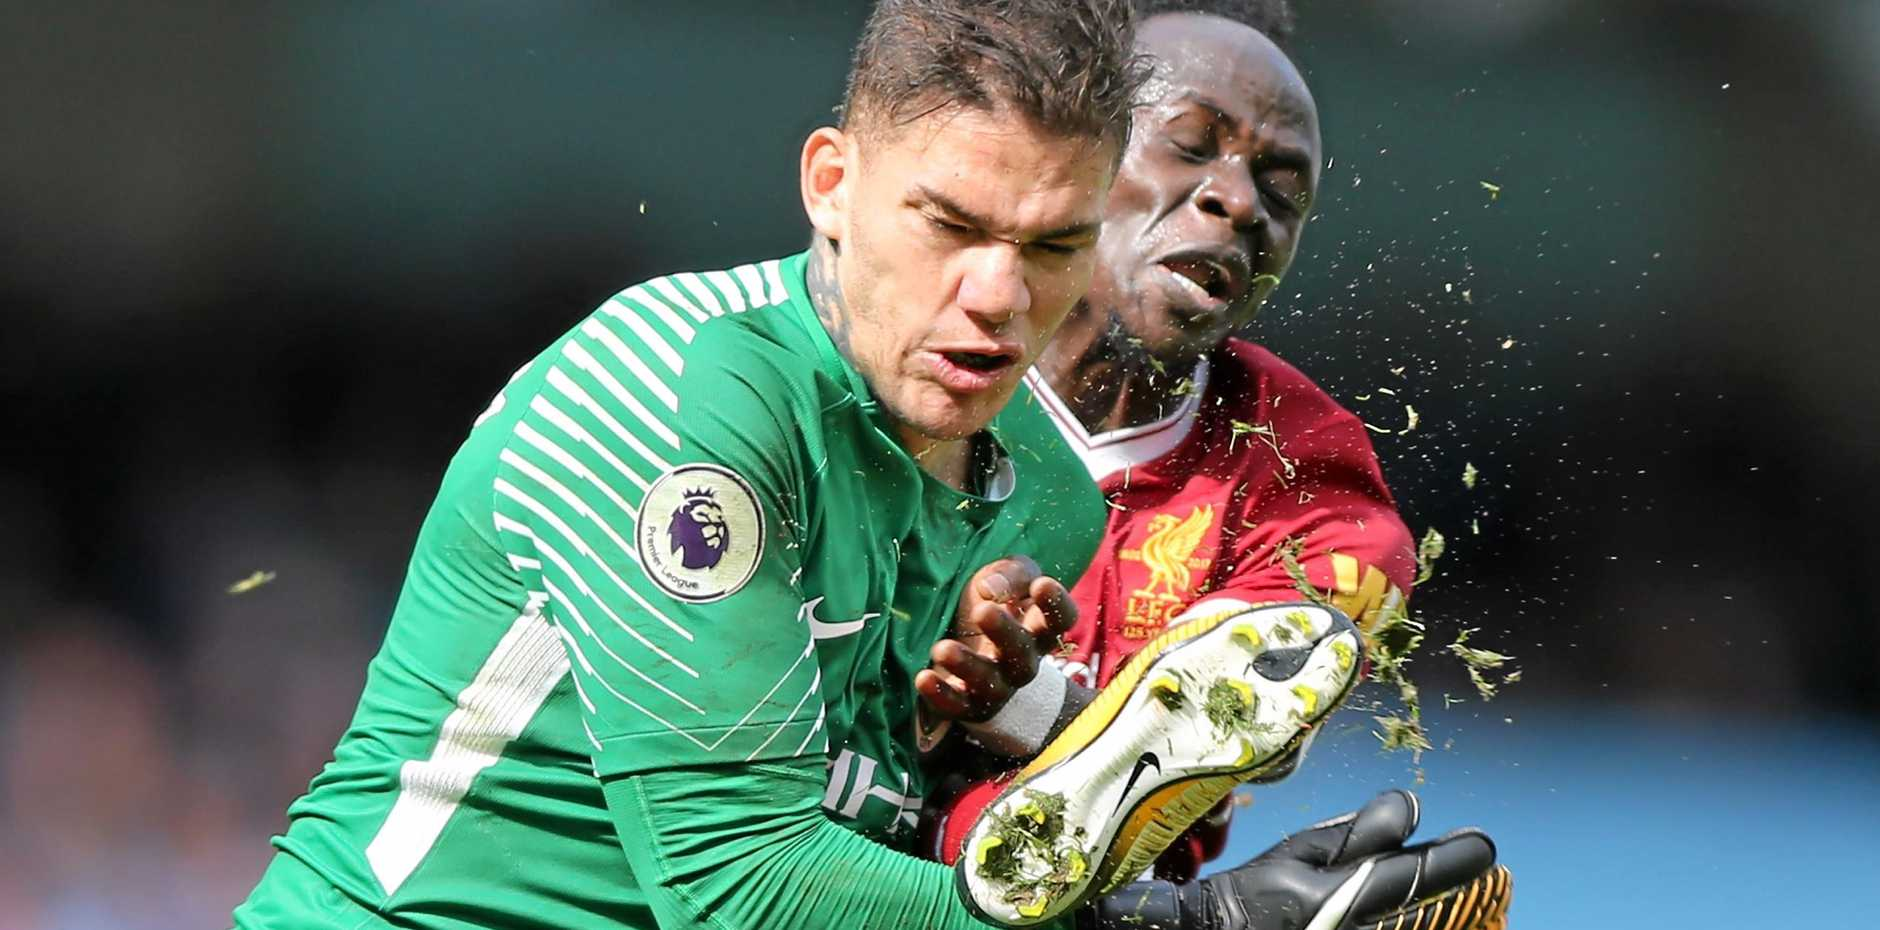 Manchester City's goalkeeper Ederson Santana de Moraes gets a boot in the face from Liverpool's Sadio Mane.